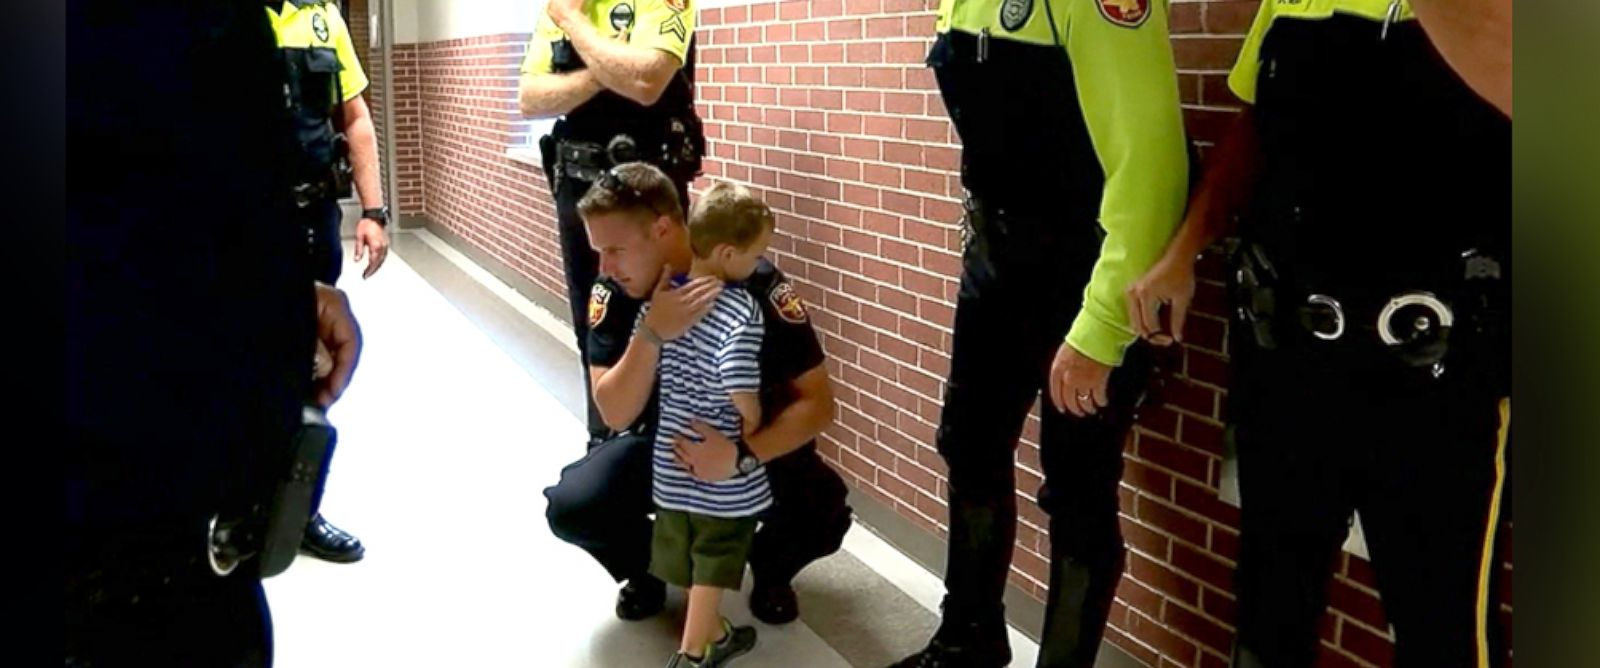 Police Officers Surprise Fallen Comrade's Kids on 1st Day of School